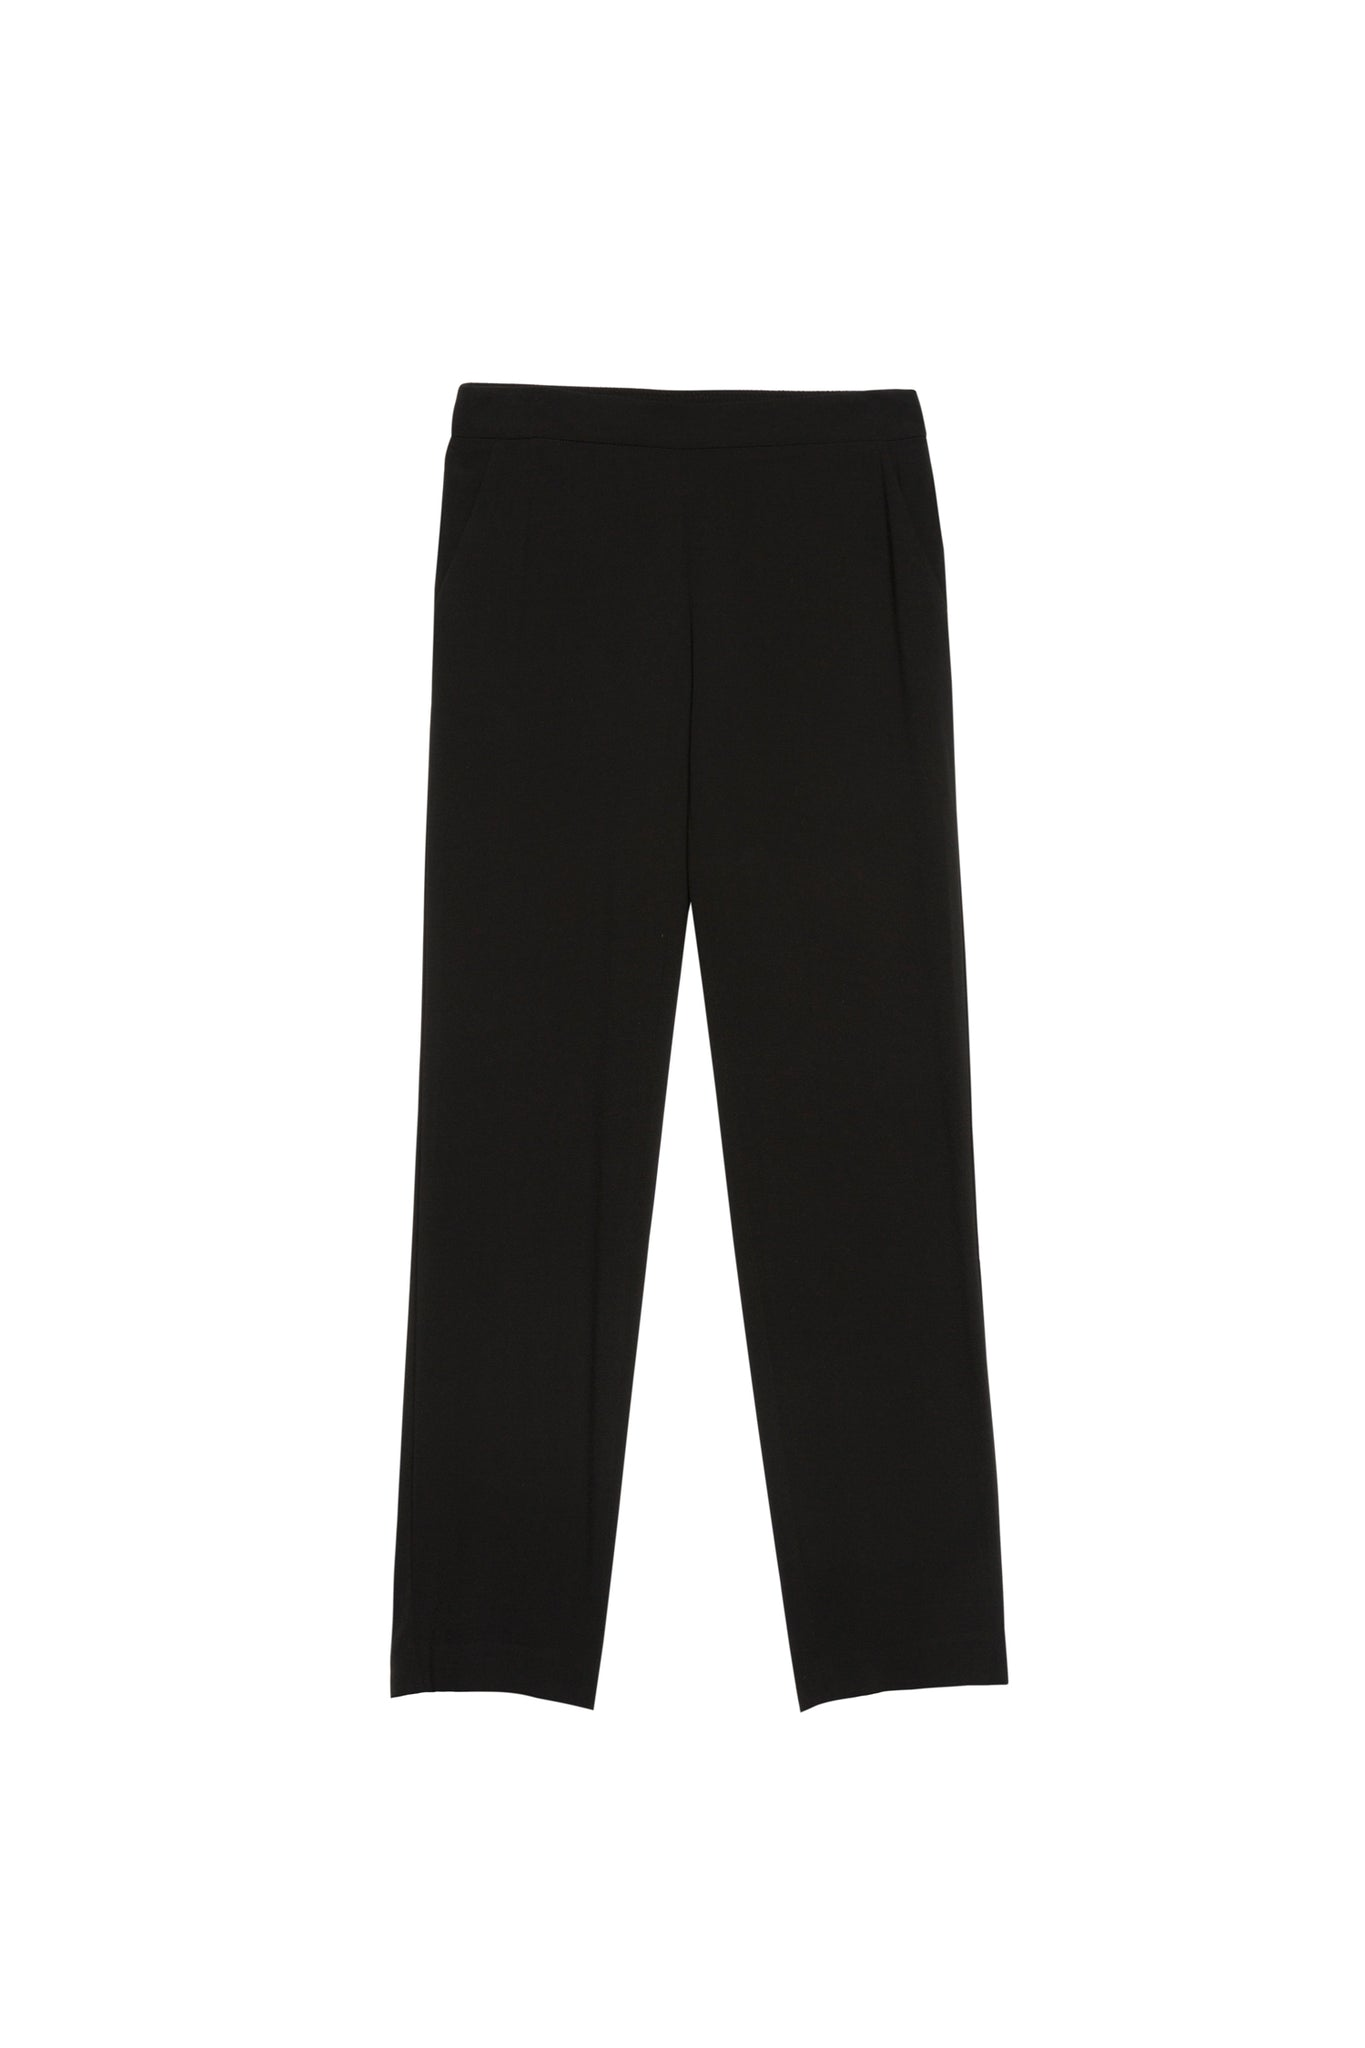 Mockingbird Trousers